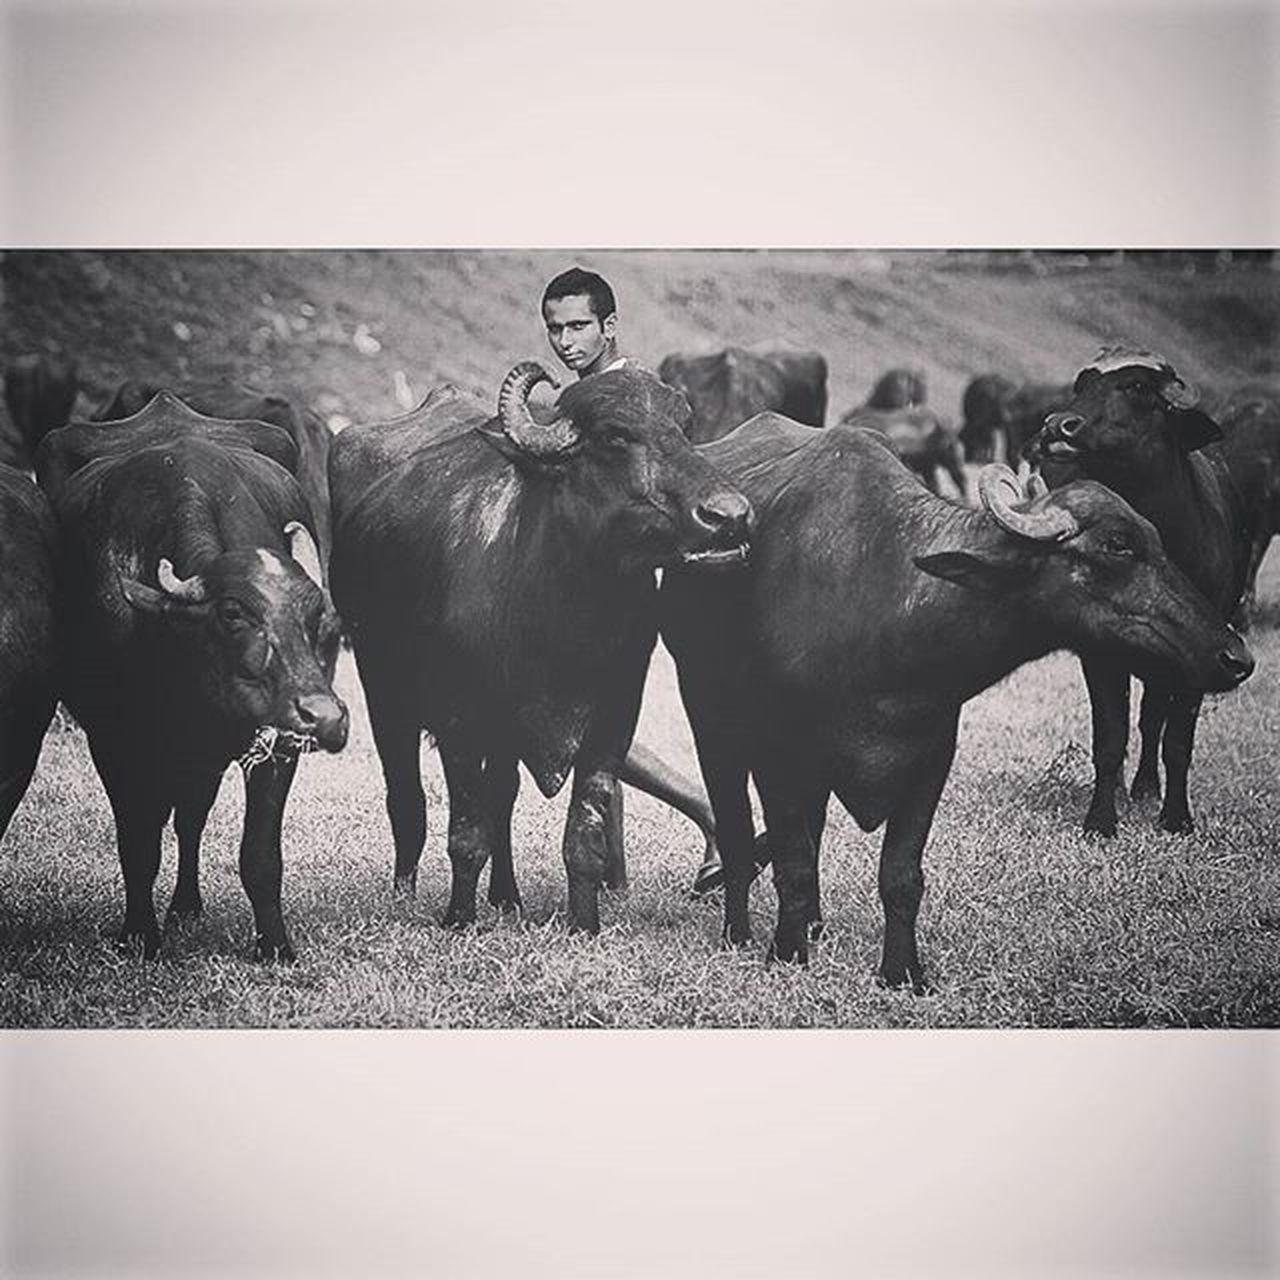 A man walked with his water buffalo Humaninterest Buffalo Buffaloboy Dailylife Lifeasphotographer Onassignment Reportagespotlight